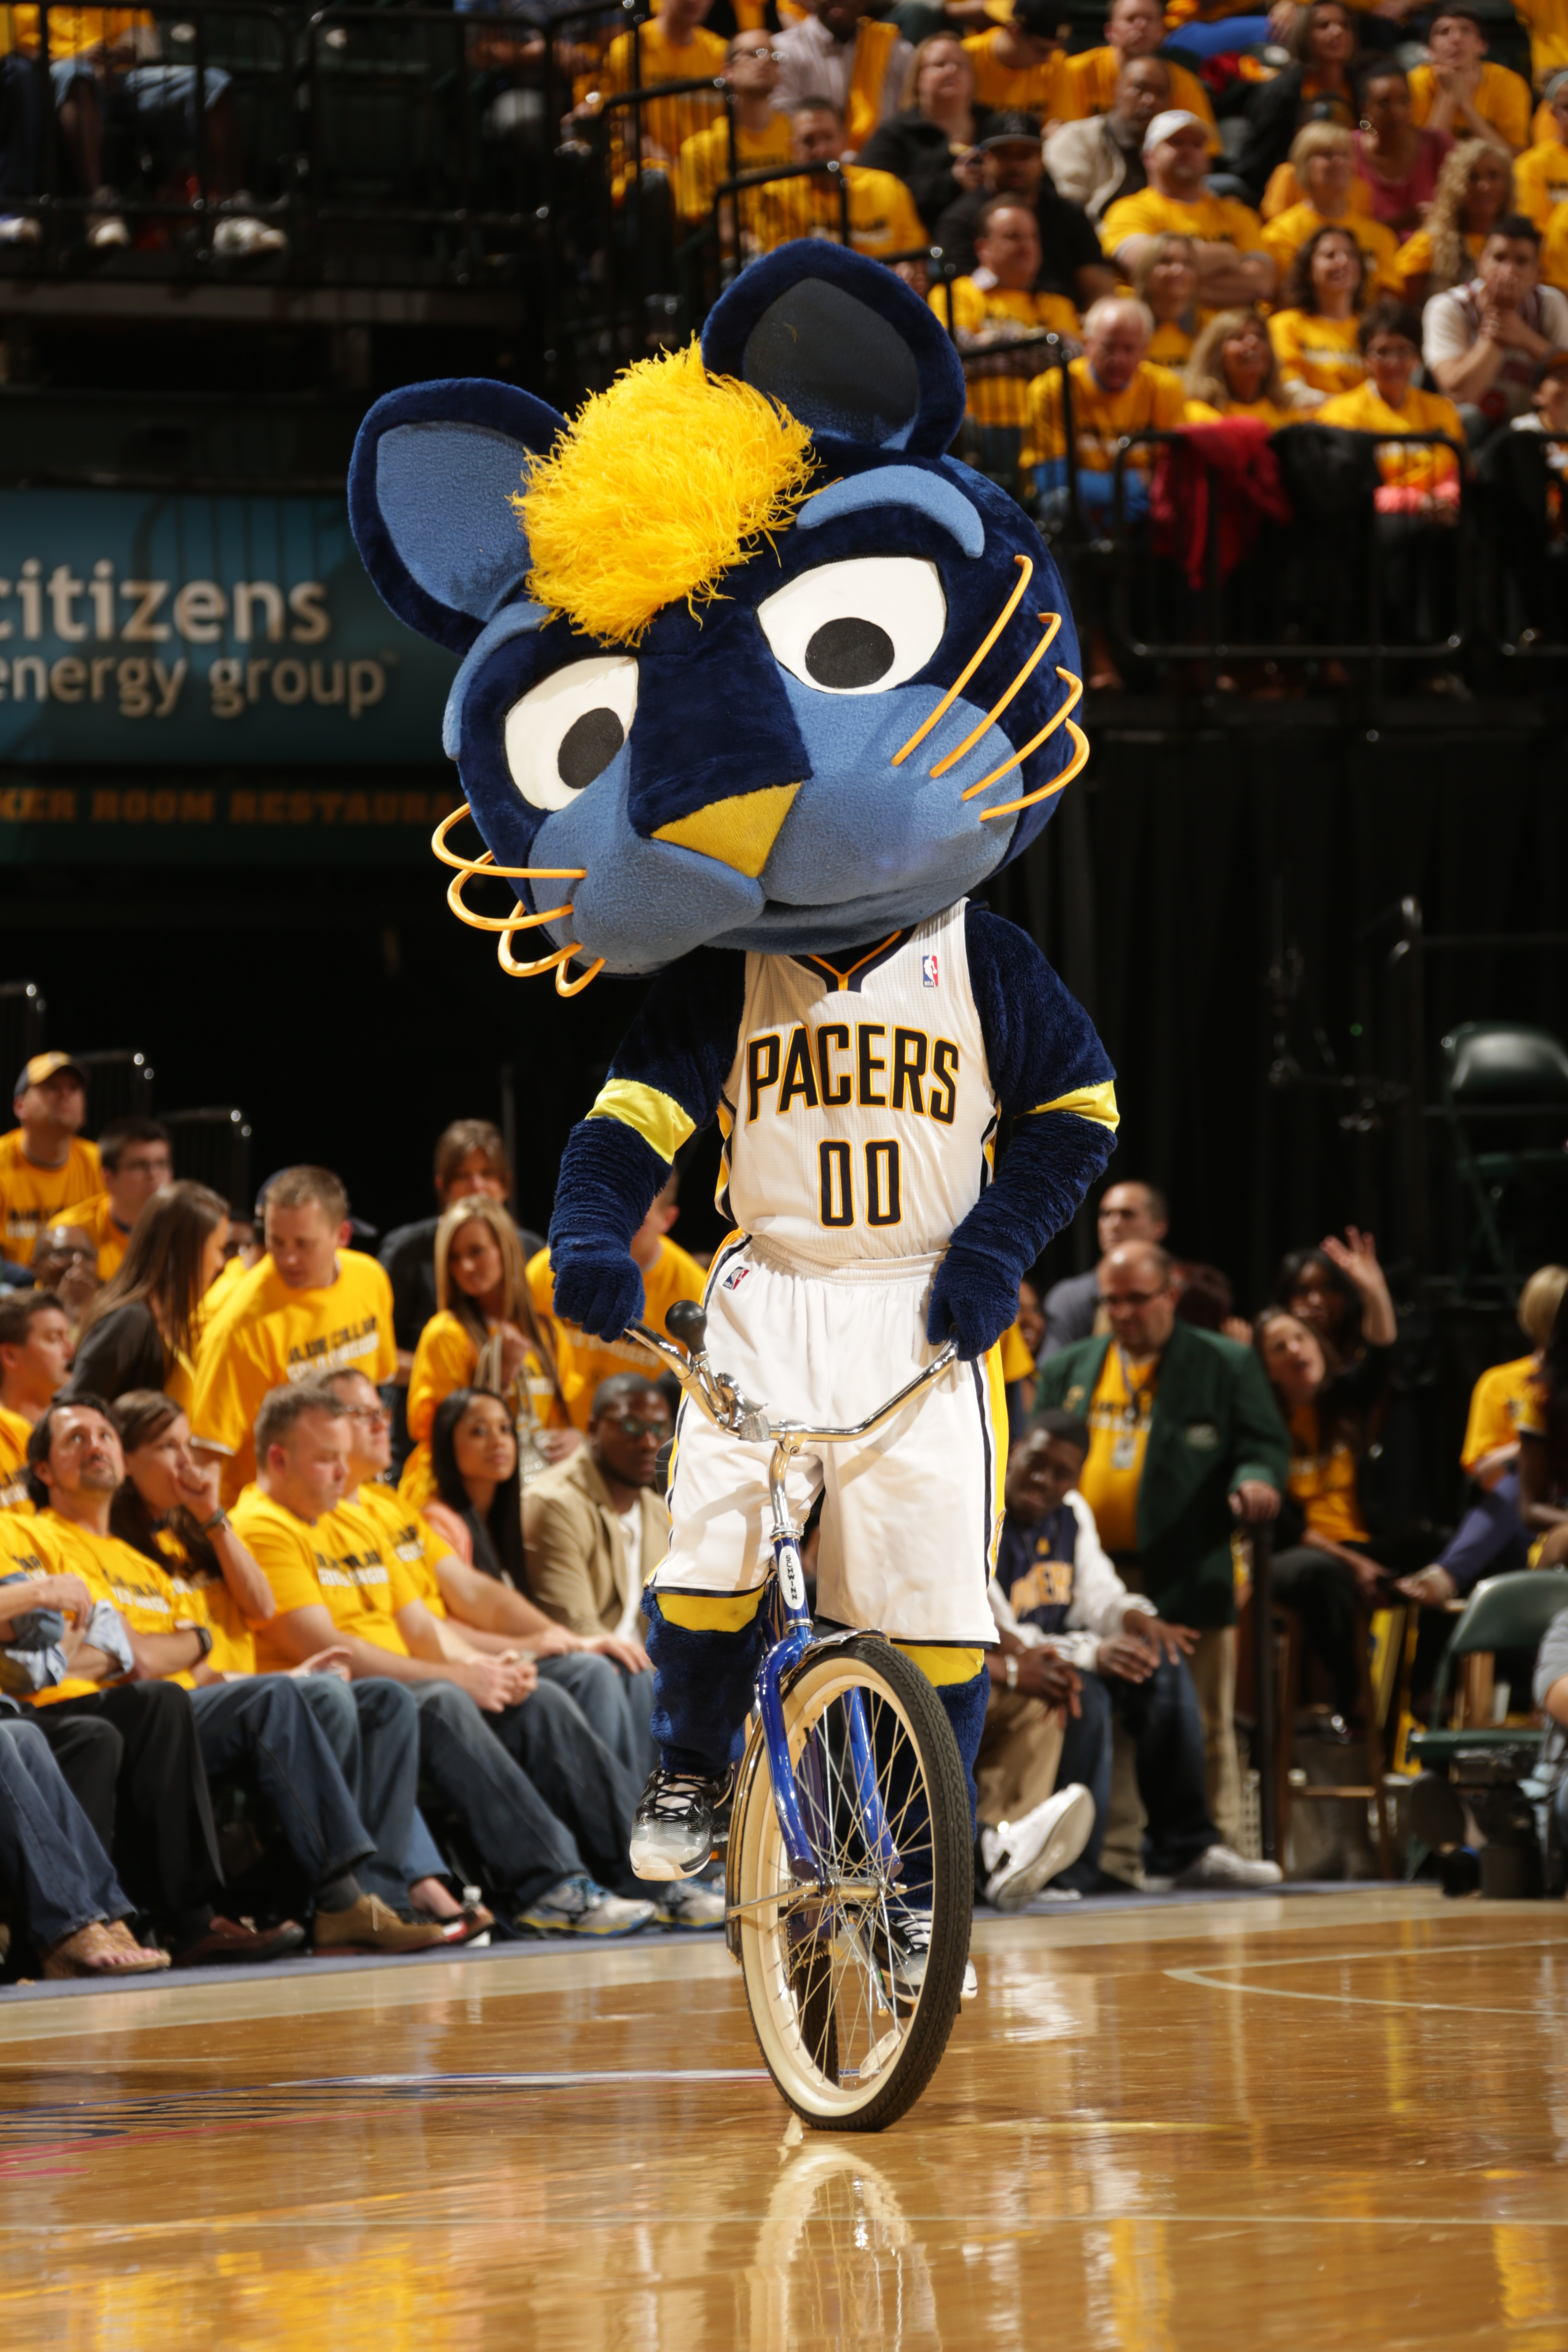 Boomer (Indiana Pacers)